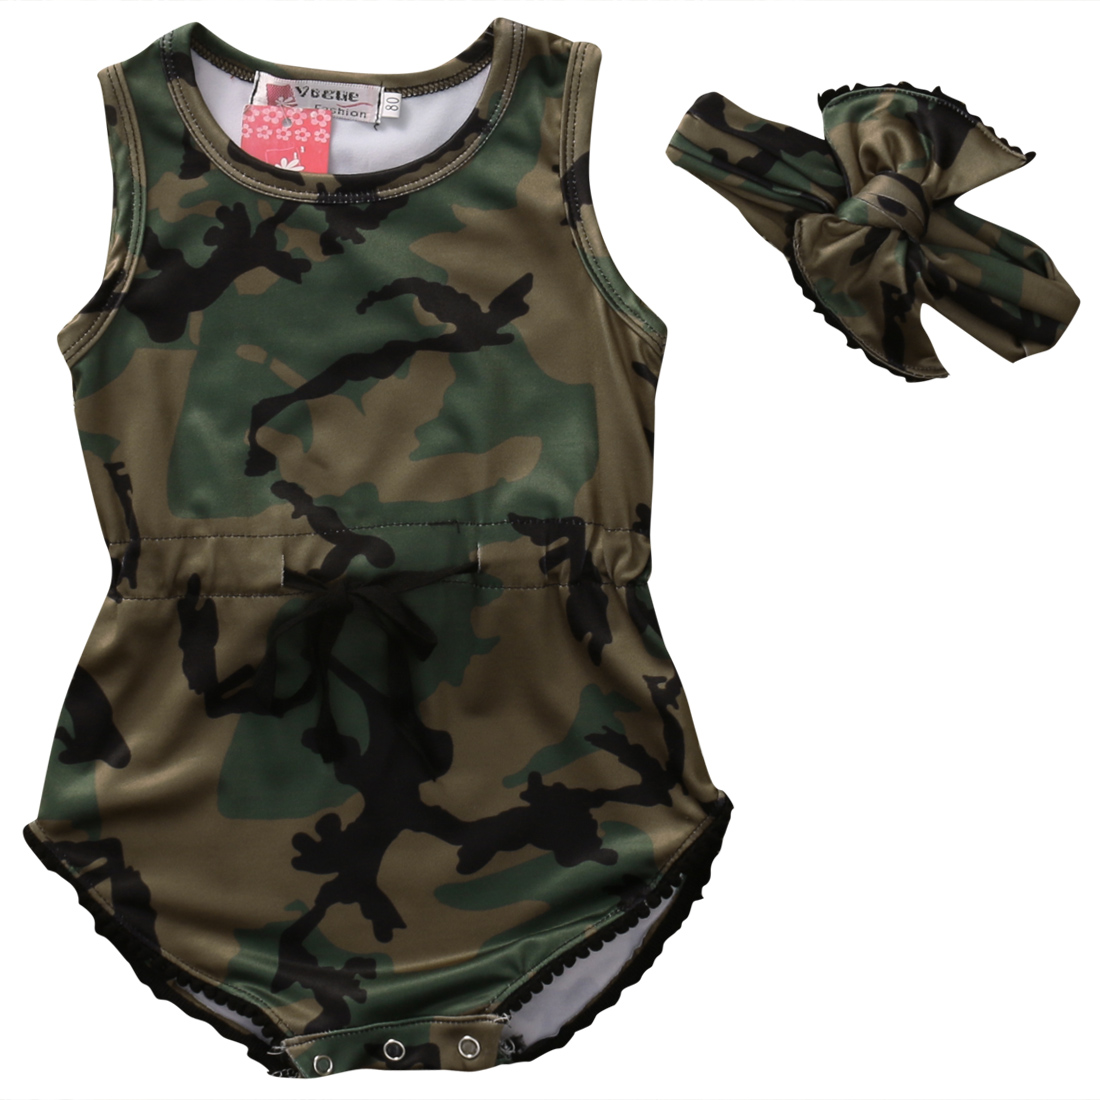 2PCS Newborn Baby Boy Girl Clothes 2017 Summer Sleeveless Camouflage Romper Baby Bodysuit +Headband 2PCS Outfits Kid Bebek Giyim 3pcs set newborn infant baby boy girl clothes 2017 summer short sleeve leopard floral romper bodysuit headband shoes outfits